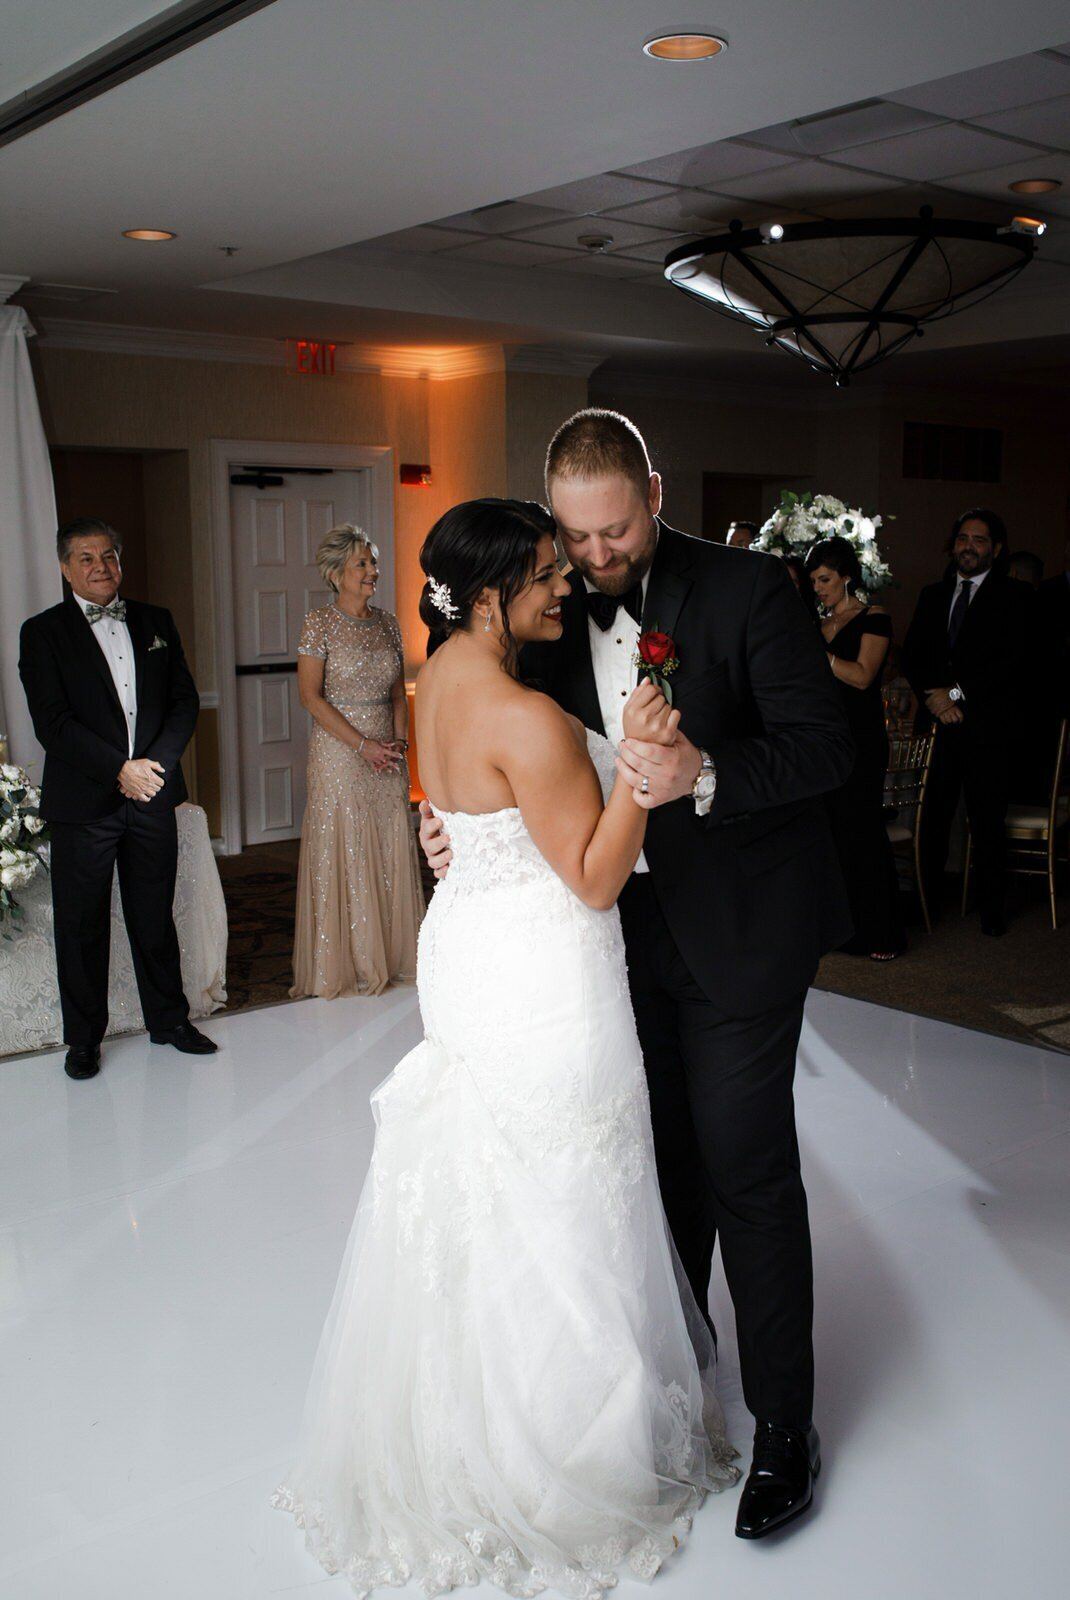 Riverside-Hotel-Fort-Lauderdale-Wedding-photo36